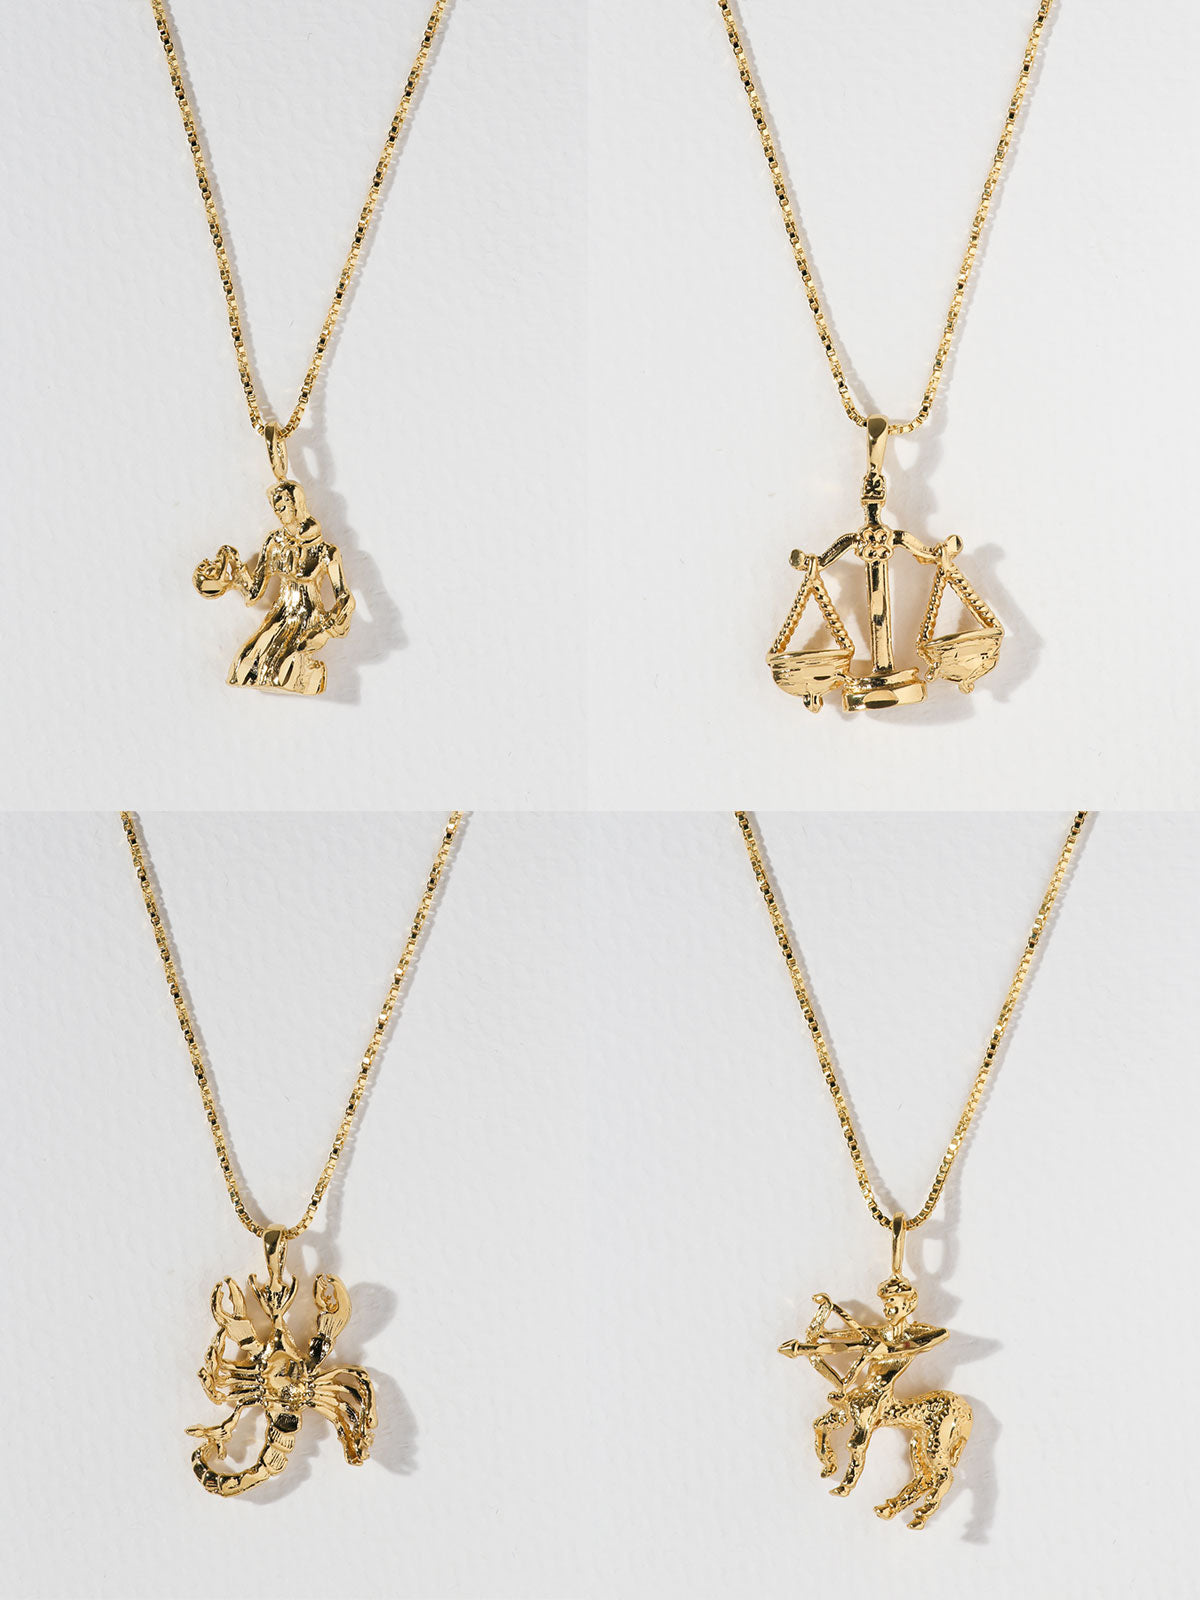 Necklaces The Zodiac Sign Necklaces: Virgo - Sagittarius Vanessa Mooney